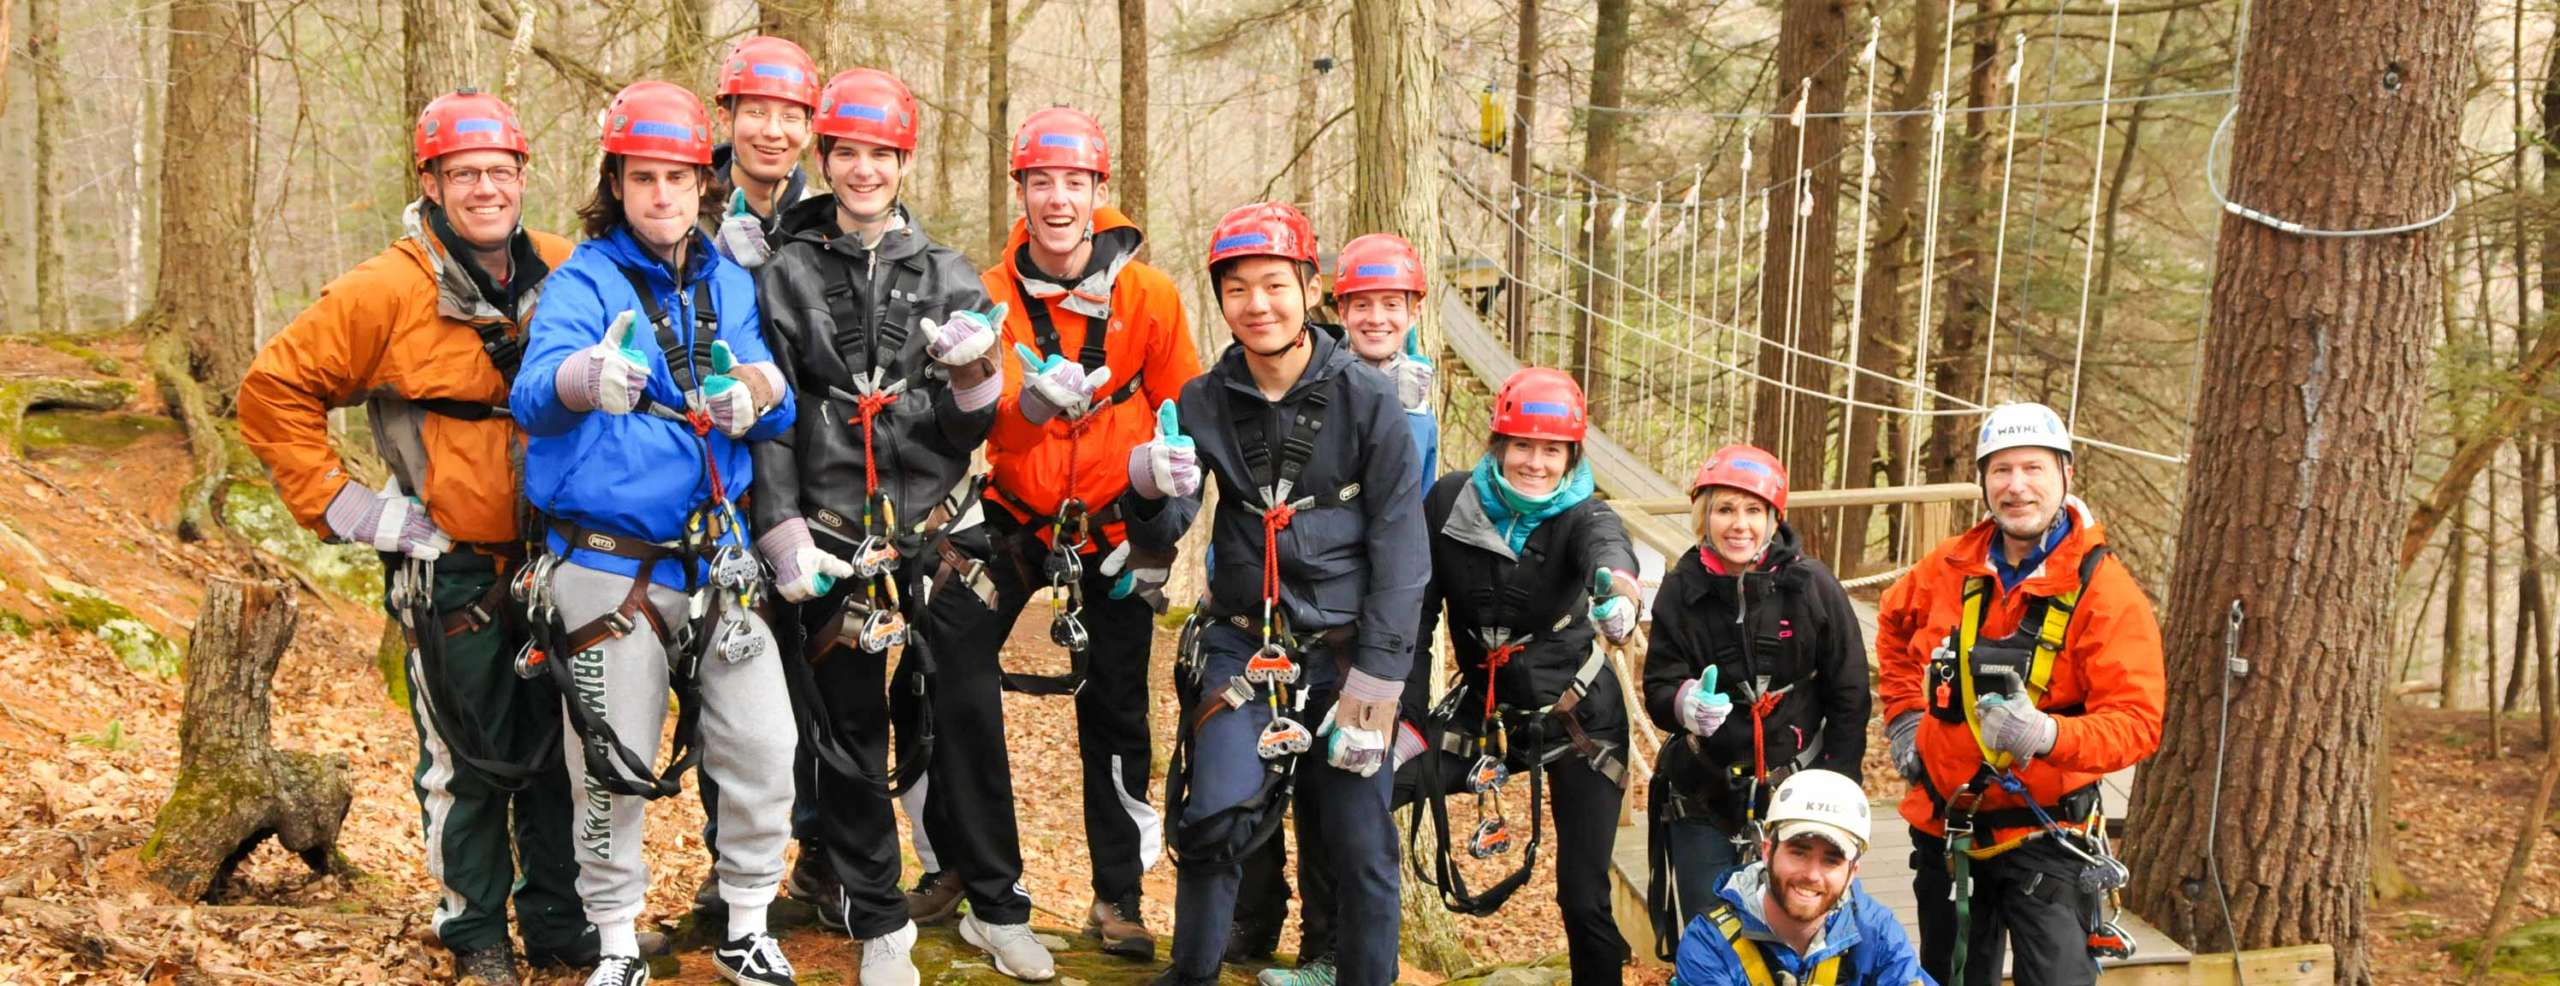 College group on a zip lining trip